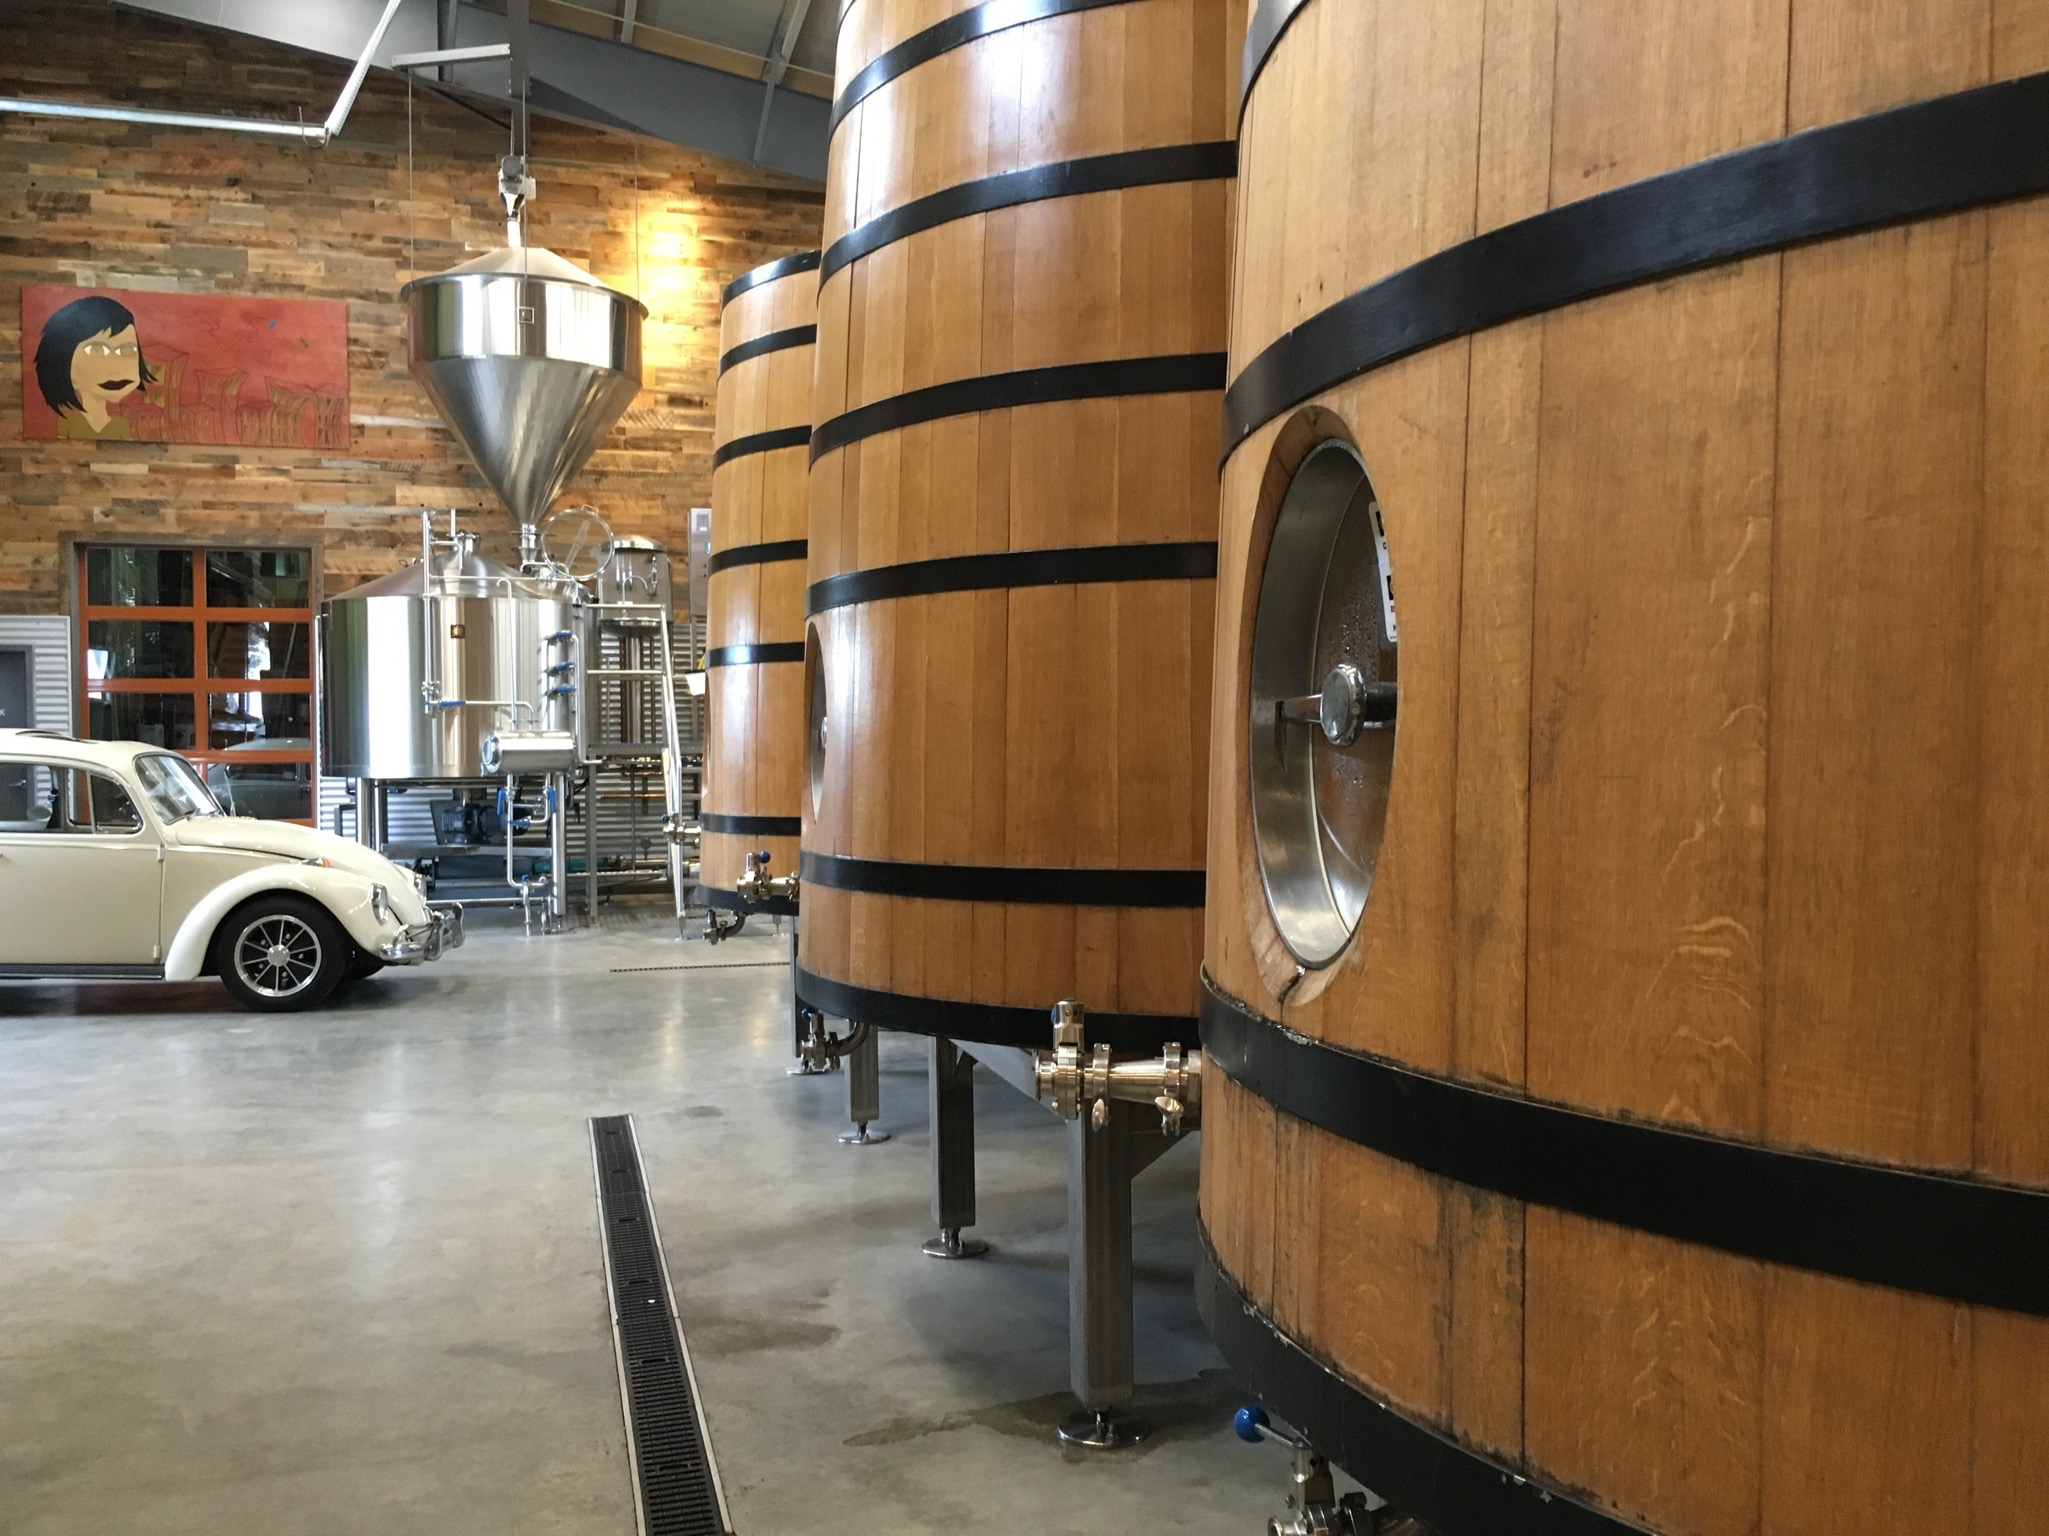 A Volkswagen Beetle in the background of a some of the foeders at Anchorage Brewing. (photo by Cat Stelzer)